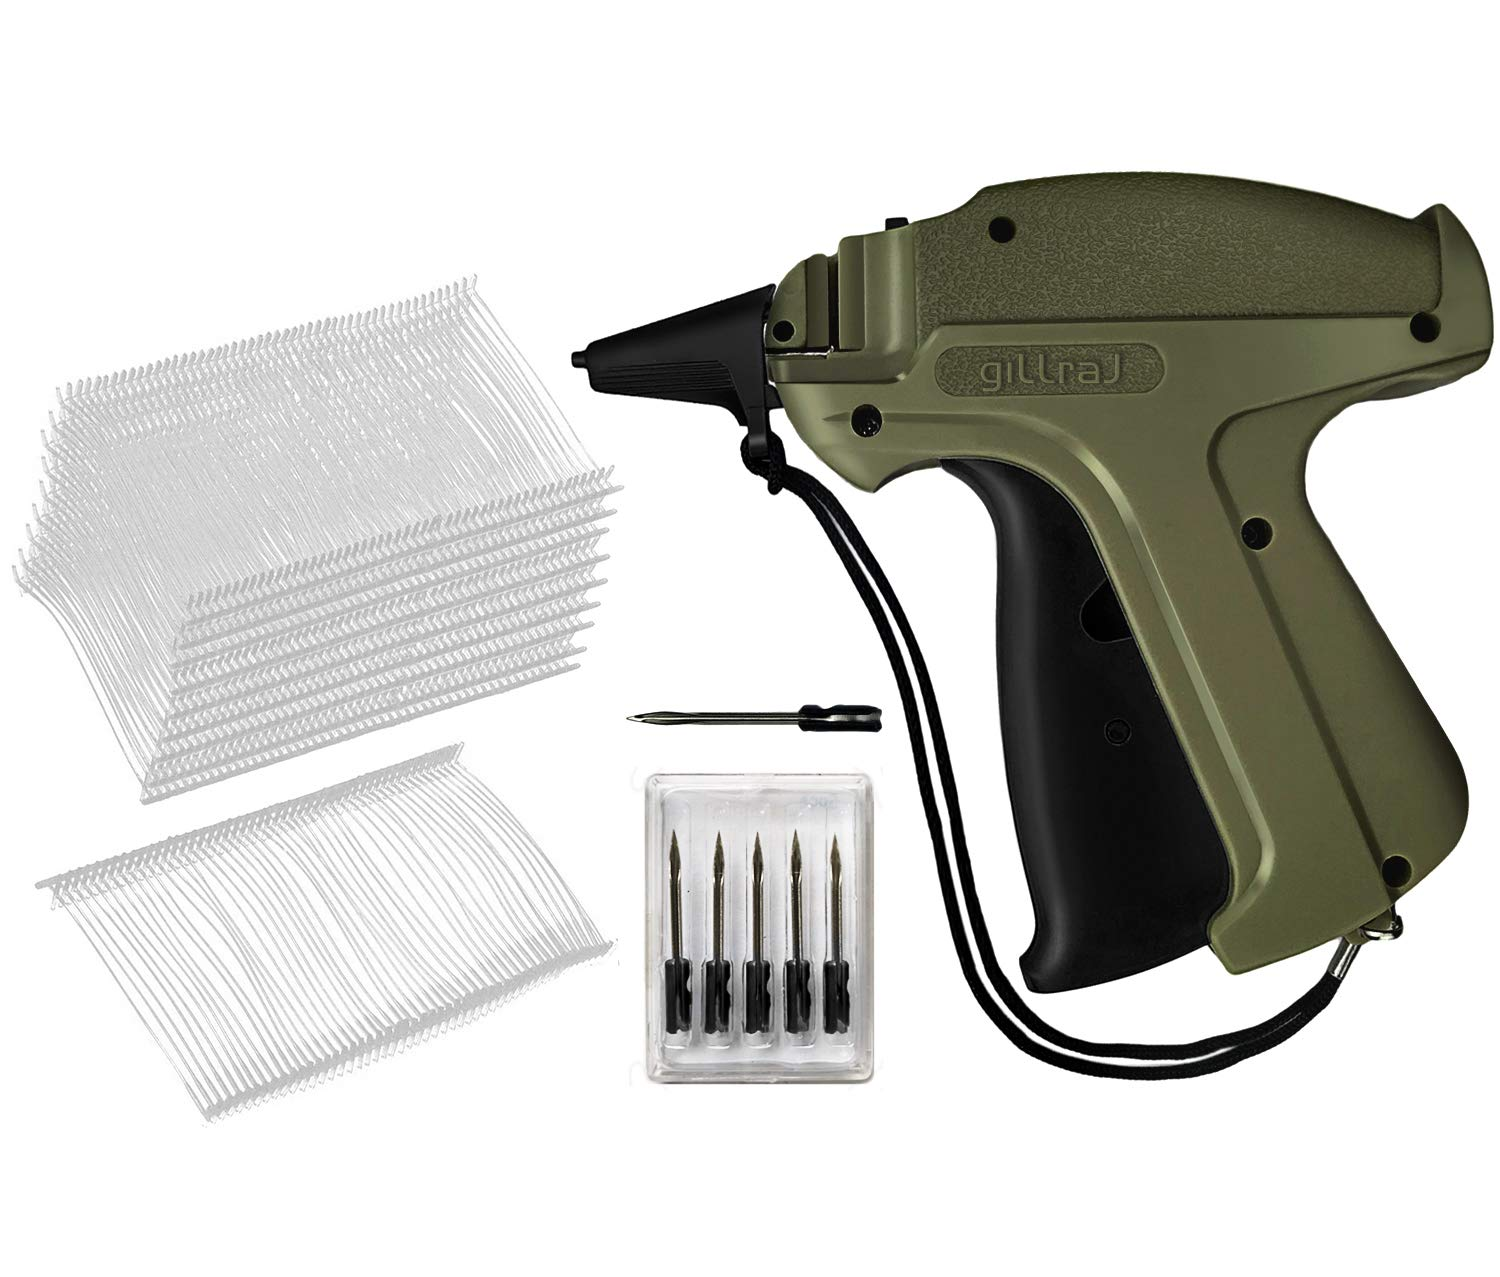 GILLRAJ MILAN Clothes Tagging Gun with 5000 Standard Tags Attachments and 6 Needles Clothing Retail Price Tag Gun Kit for Boutique Store Warehouse ...